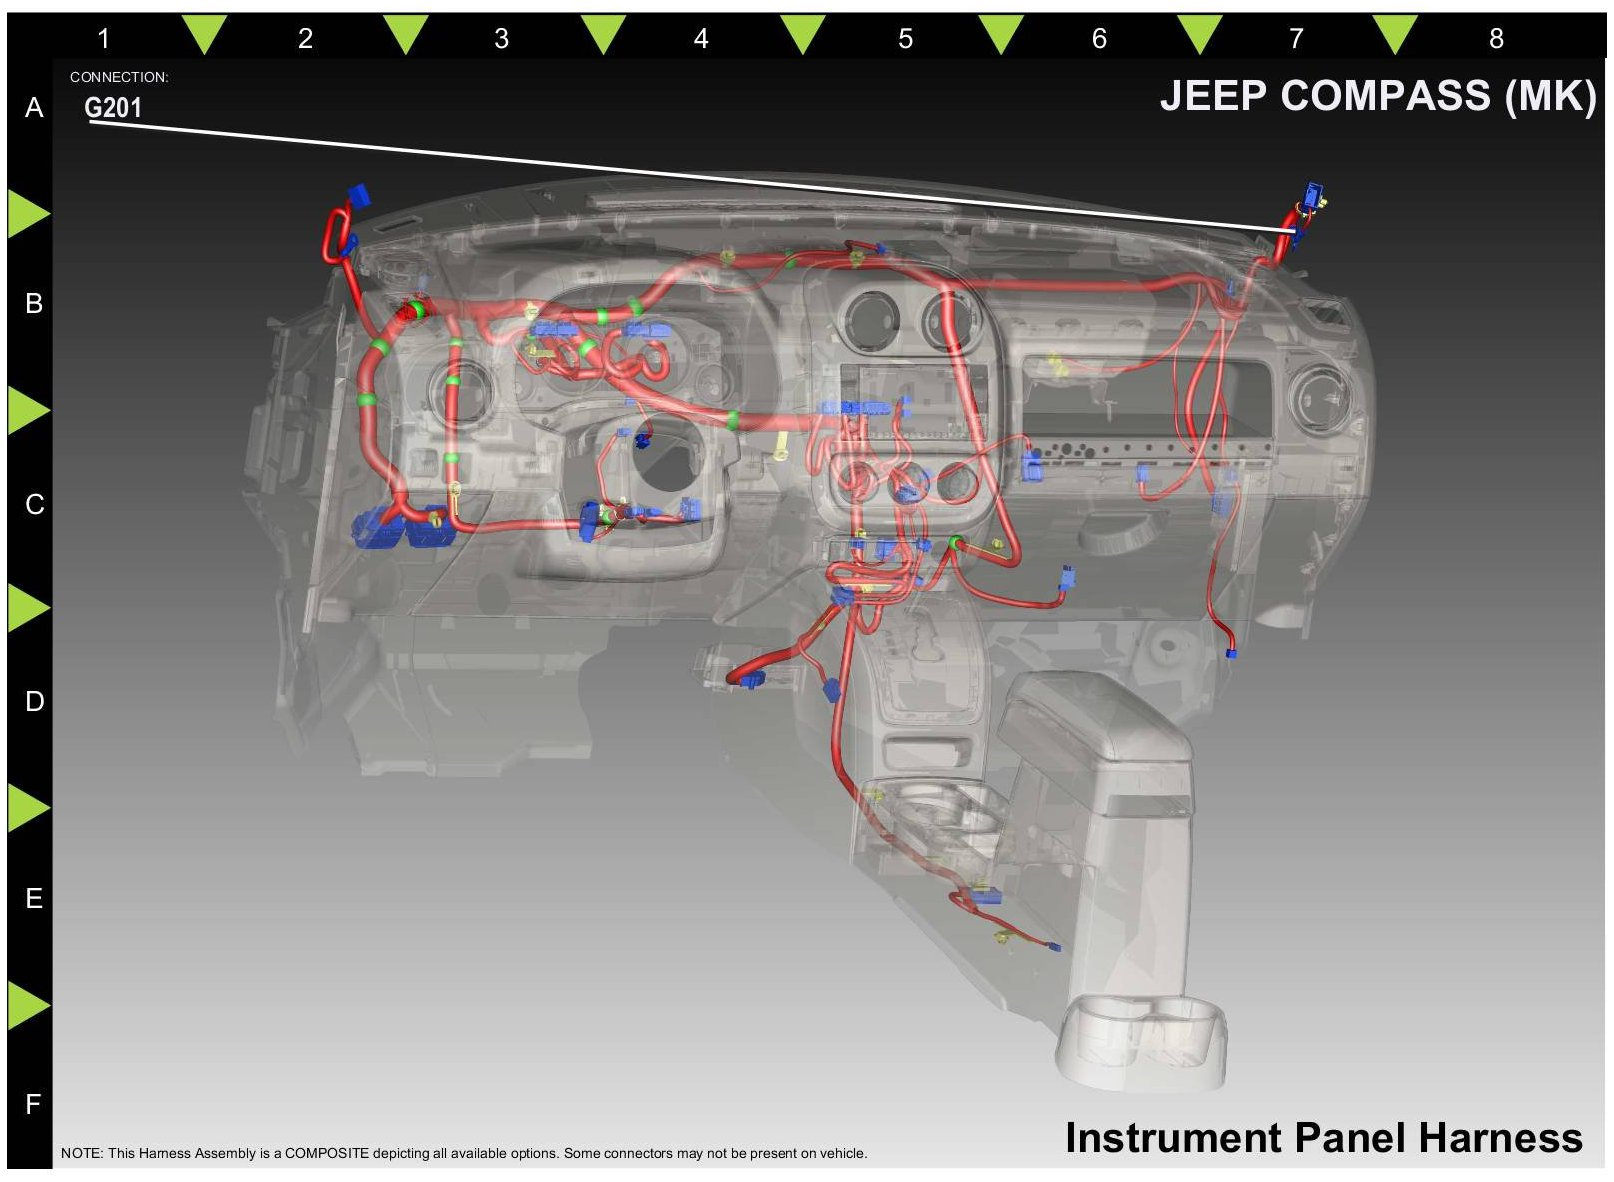 2012 Jeep Comp Wiring Diagram Library For Compass Dc2102e6 5355 4039 A835 Dc2102e I Have The